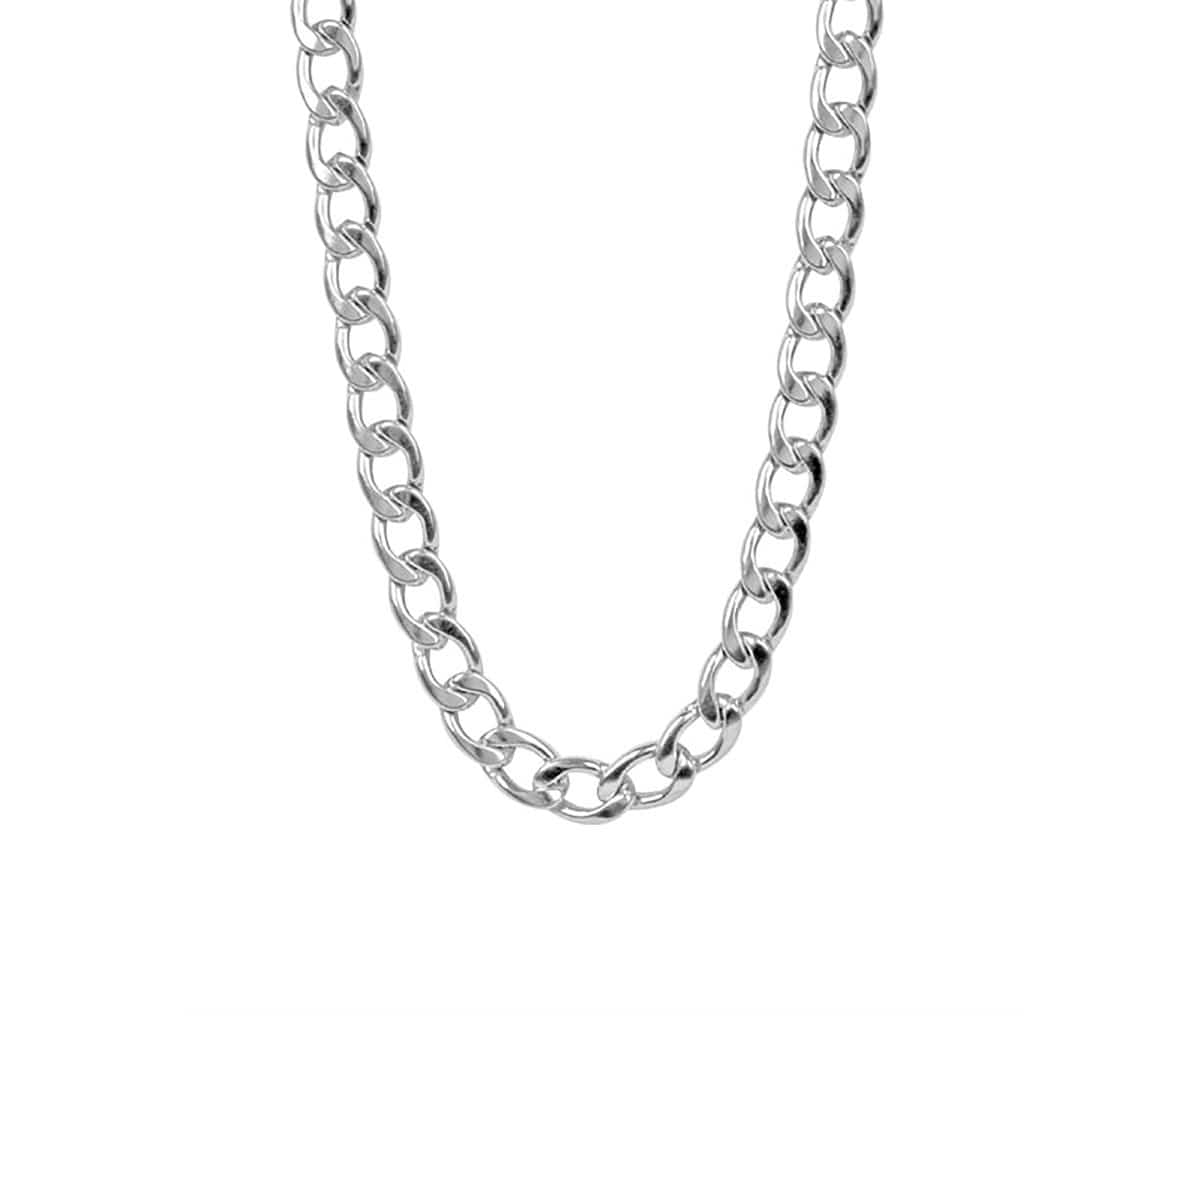 Silver Stainless Steel Large 10mm Round Curb Chain Chains